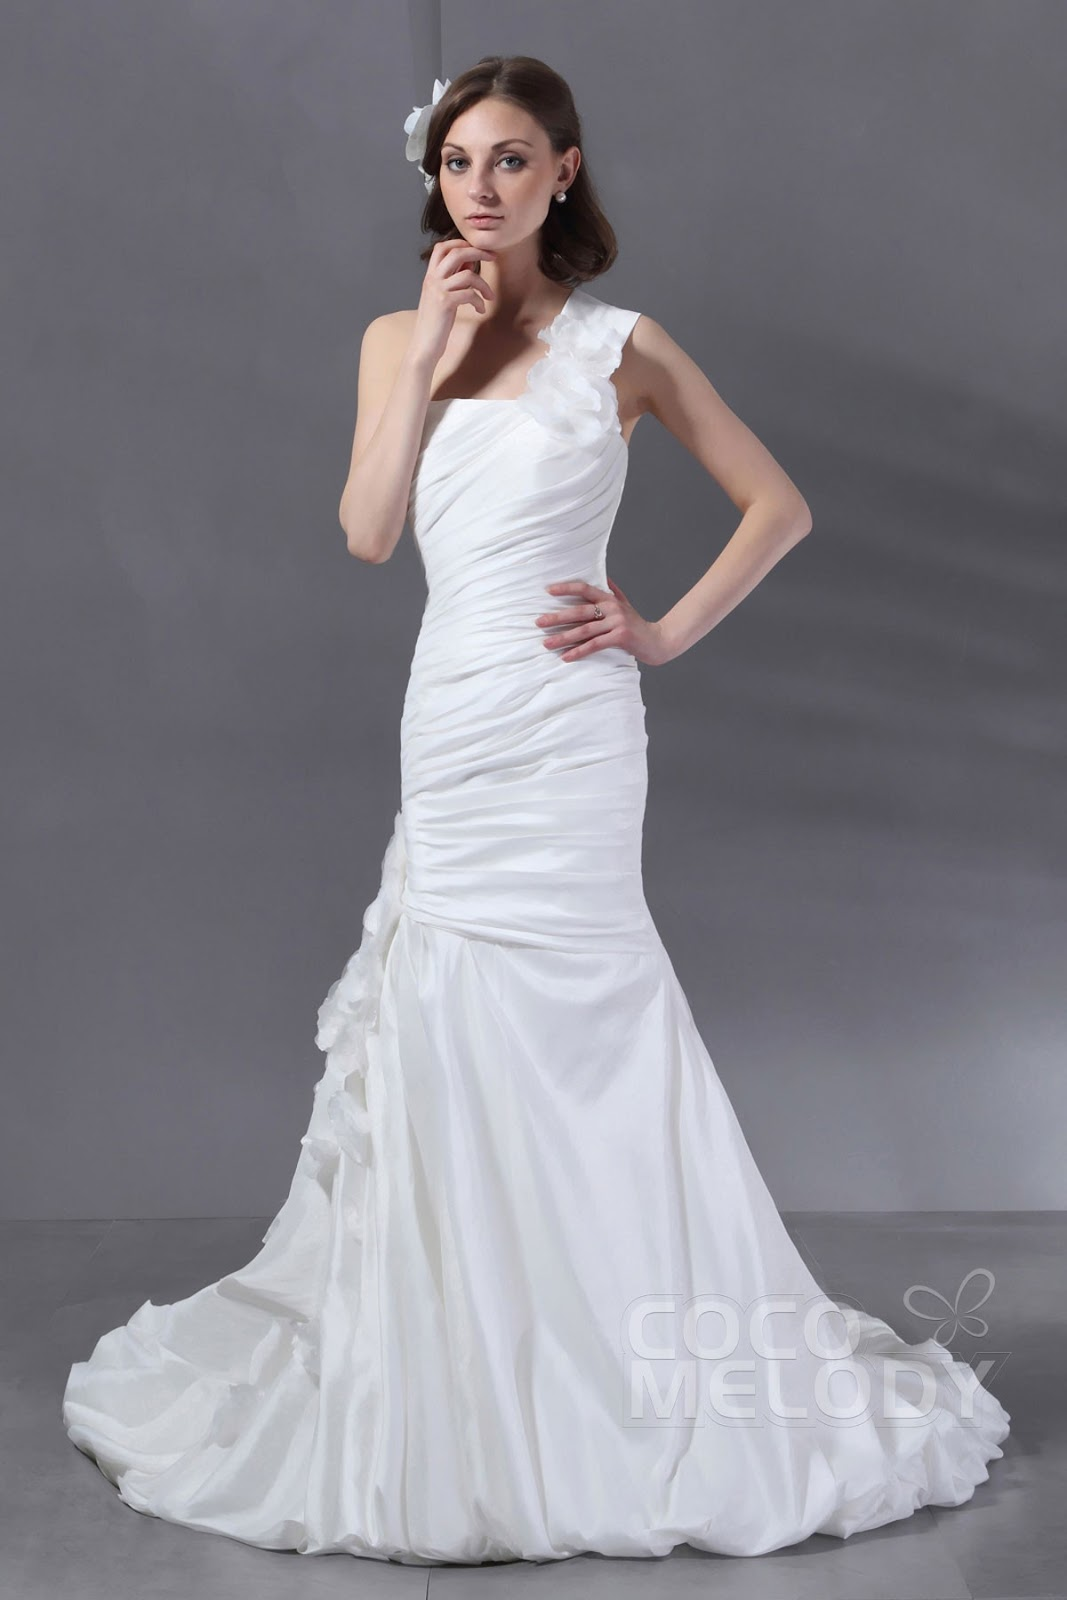 2013 the most elegant wedding dress for Most elegant wedding dresses